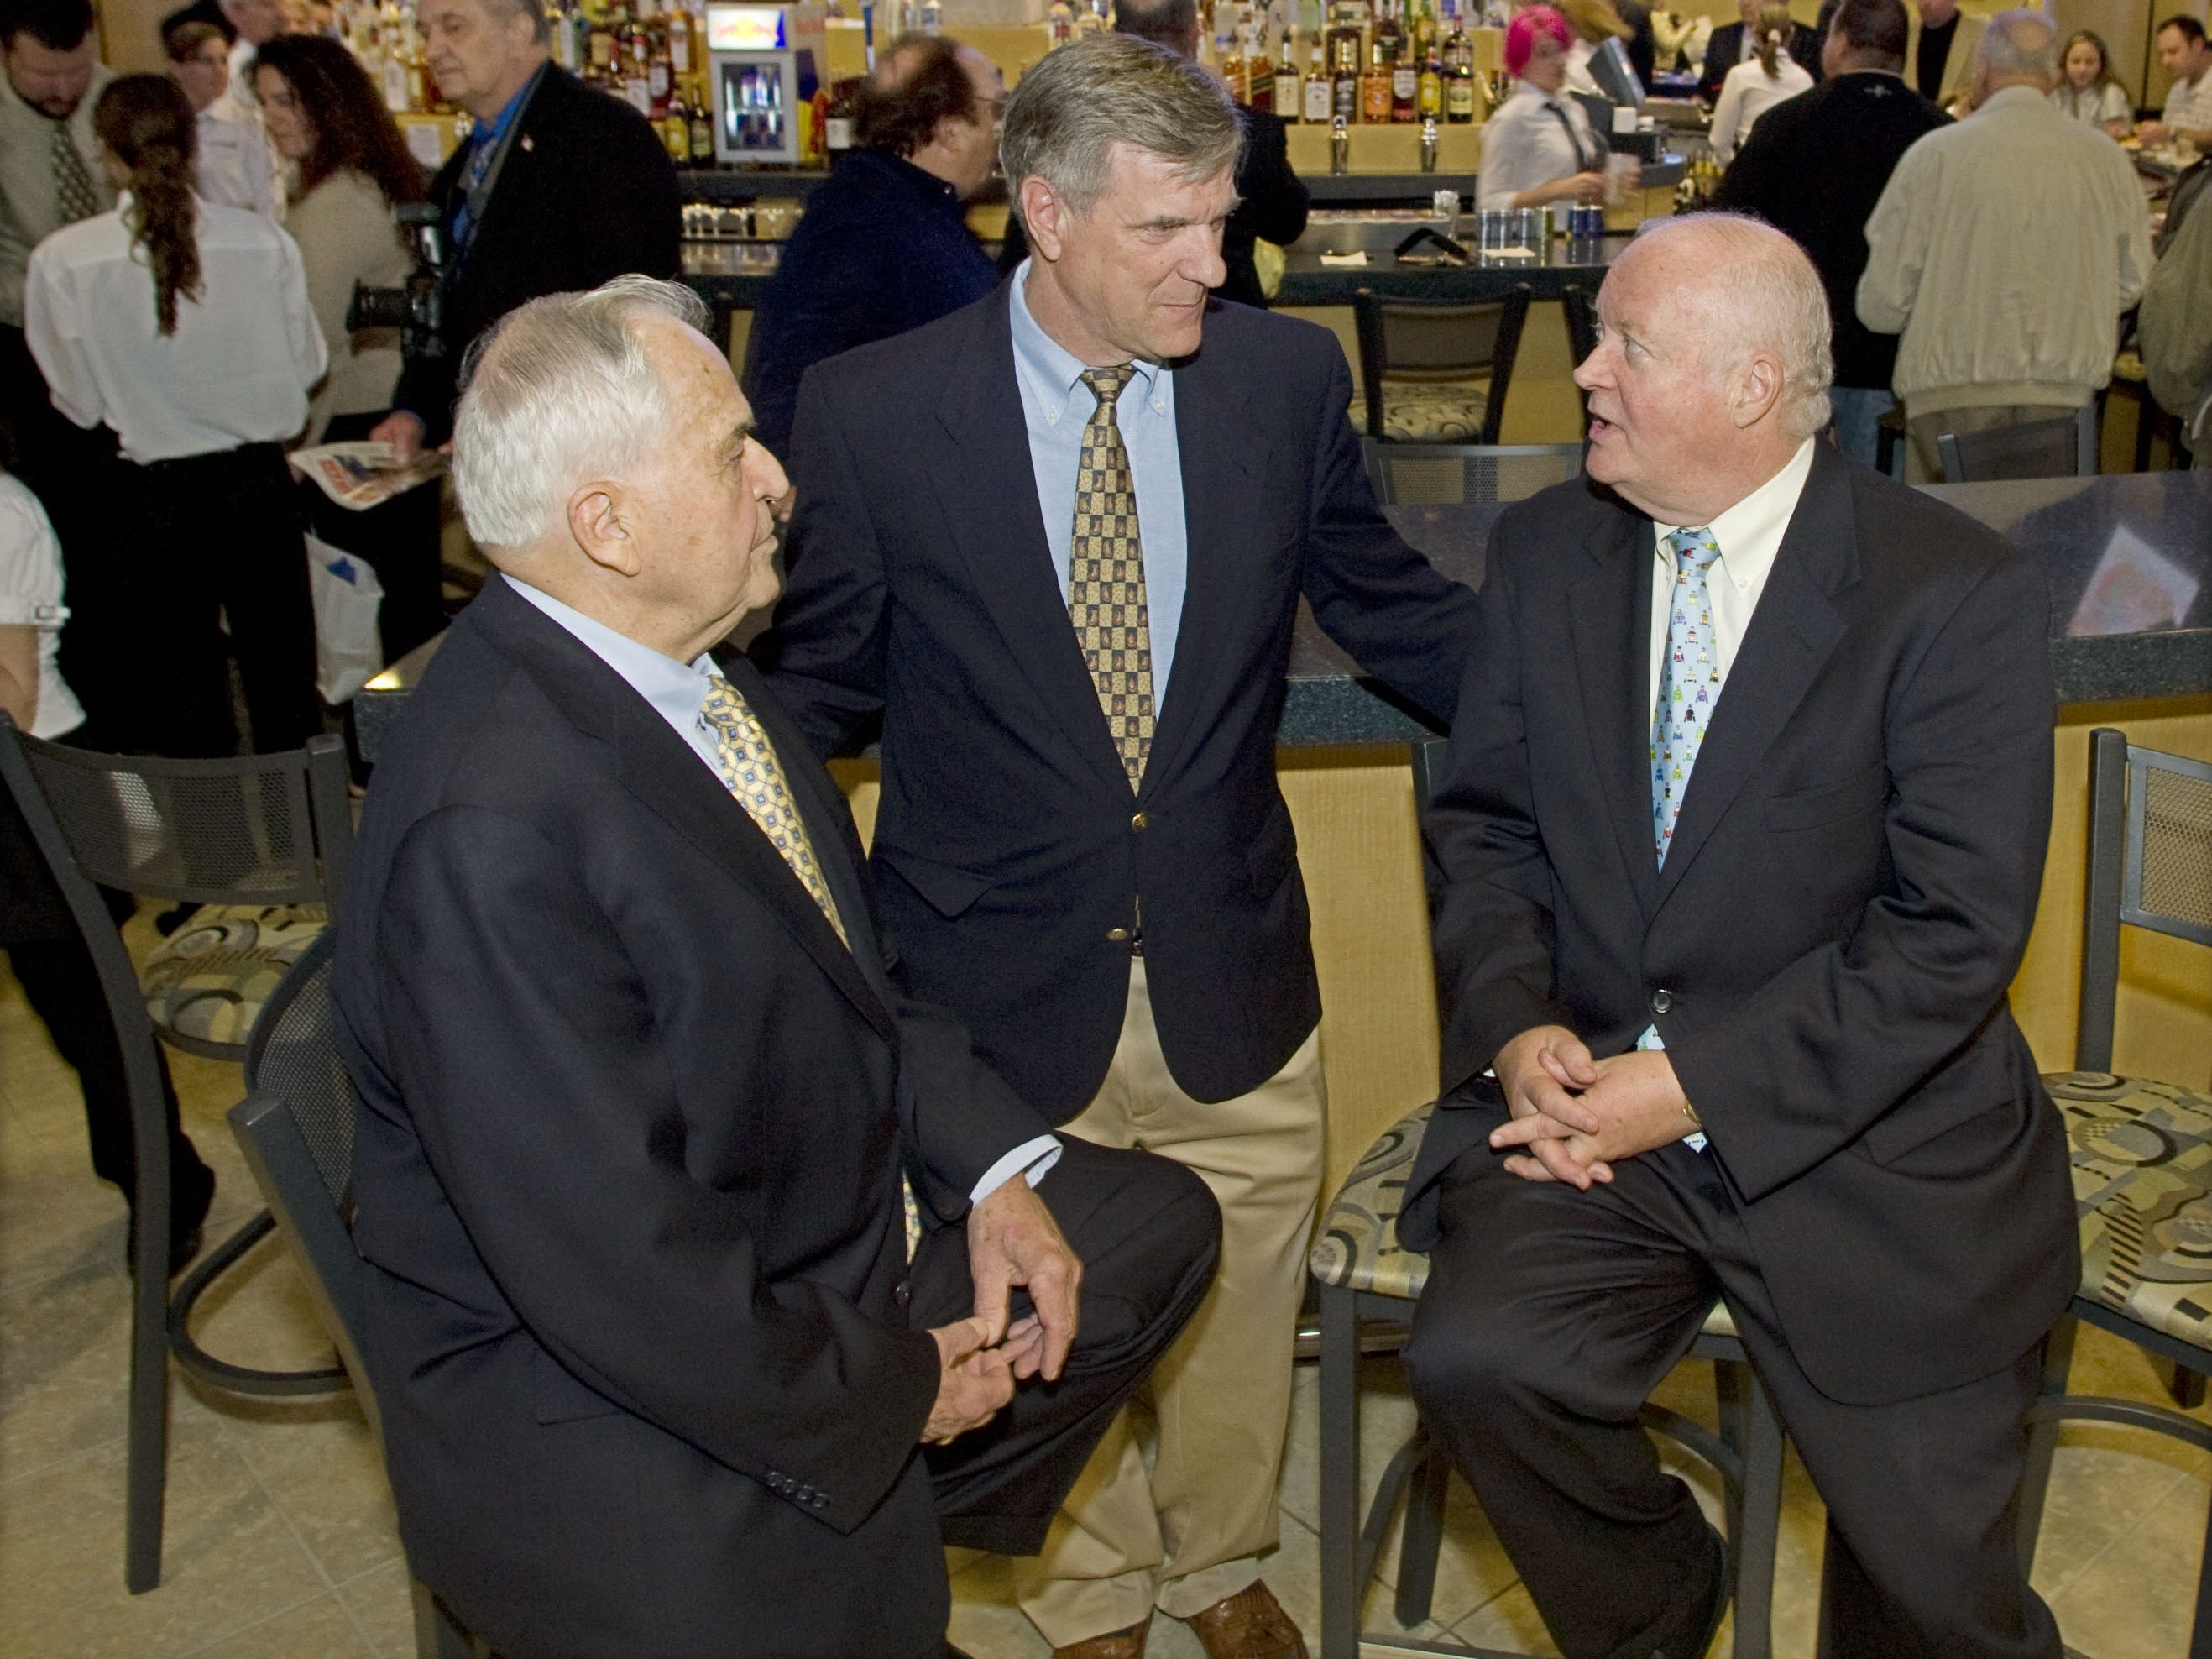 Grand opening party for the Favorites off track horse betting facility . l-r Toms River mayor Thomas Kelaher, George Gilmore, attorney for Freehold raceway and Donald Codey, Jr., president and general manager of Freehold Raceway .........Bob Bielk/Asbury Park Press-News-Neptune-4/28/08-#70205